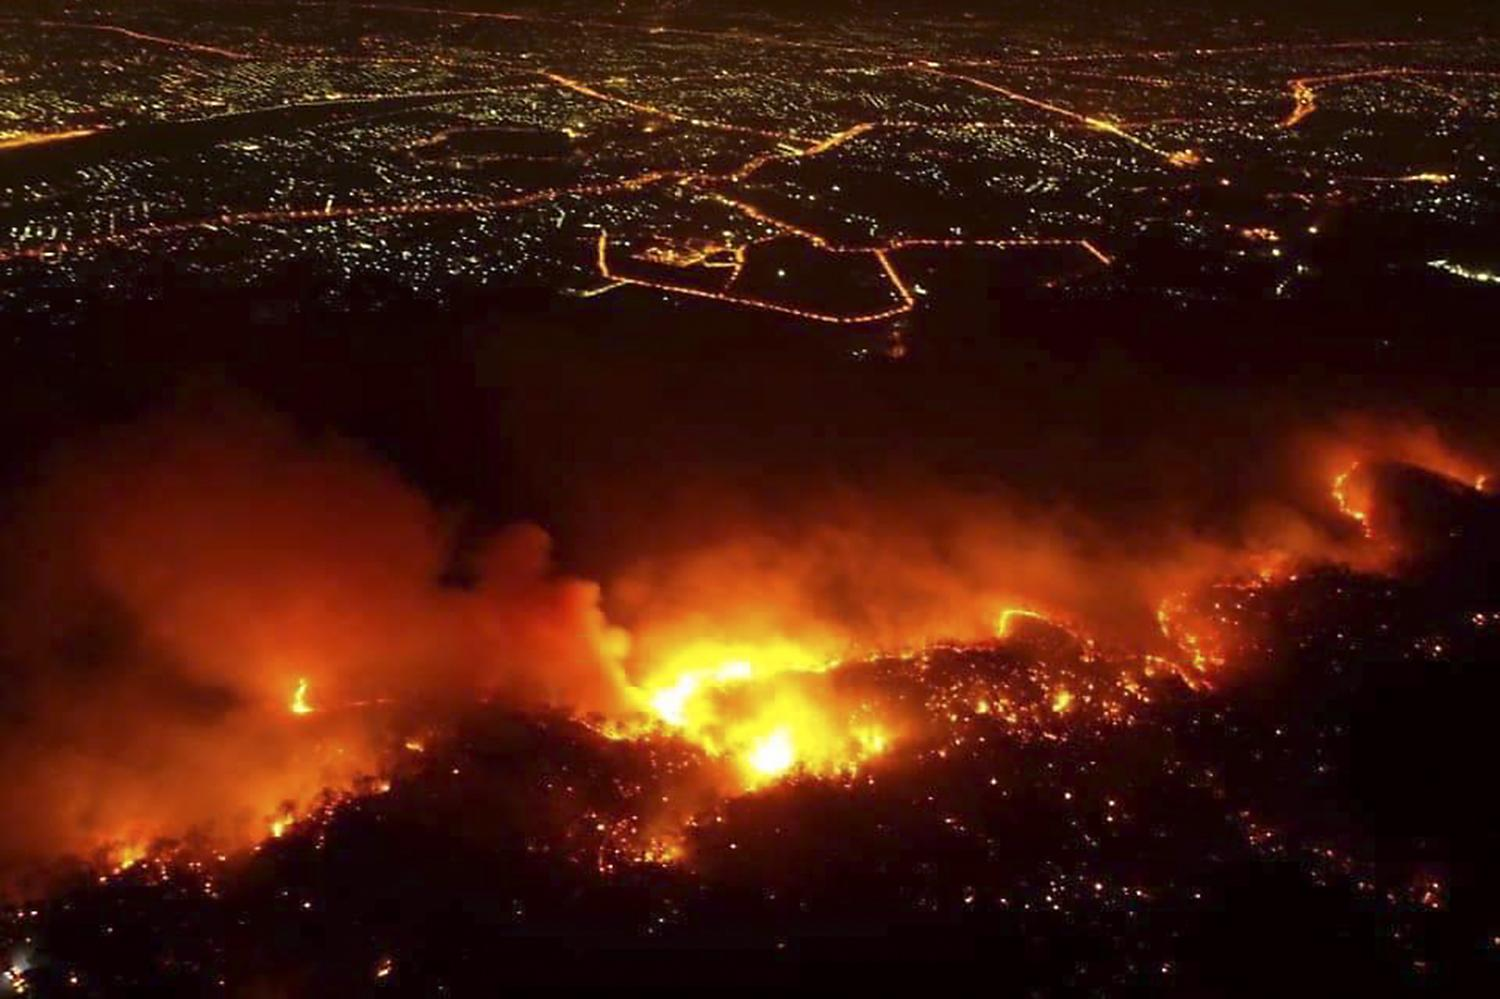 In this March 25 photo, wildfires ravage Doi Suthep-Pui National Park in Chiang Mai's Hang Dong district.Chiang Mai Volunteer Drone Team